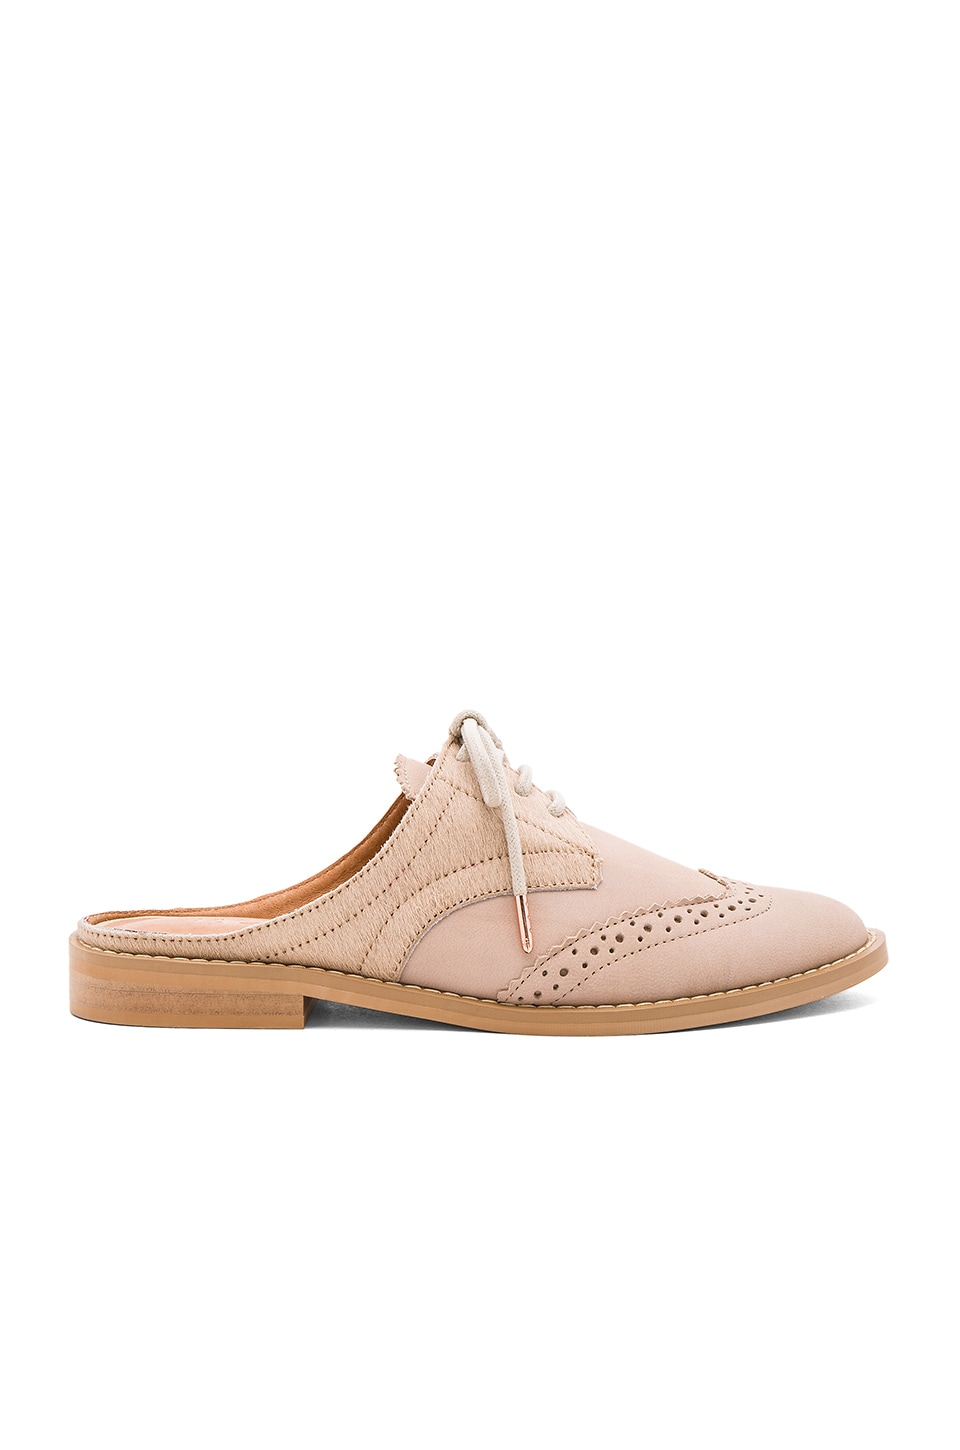 JAGGAR Capsule Cow Hair Oxford in Nude